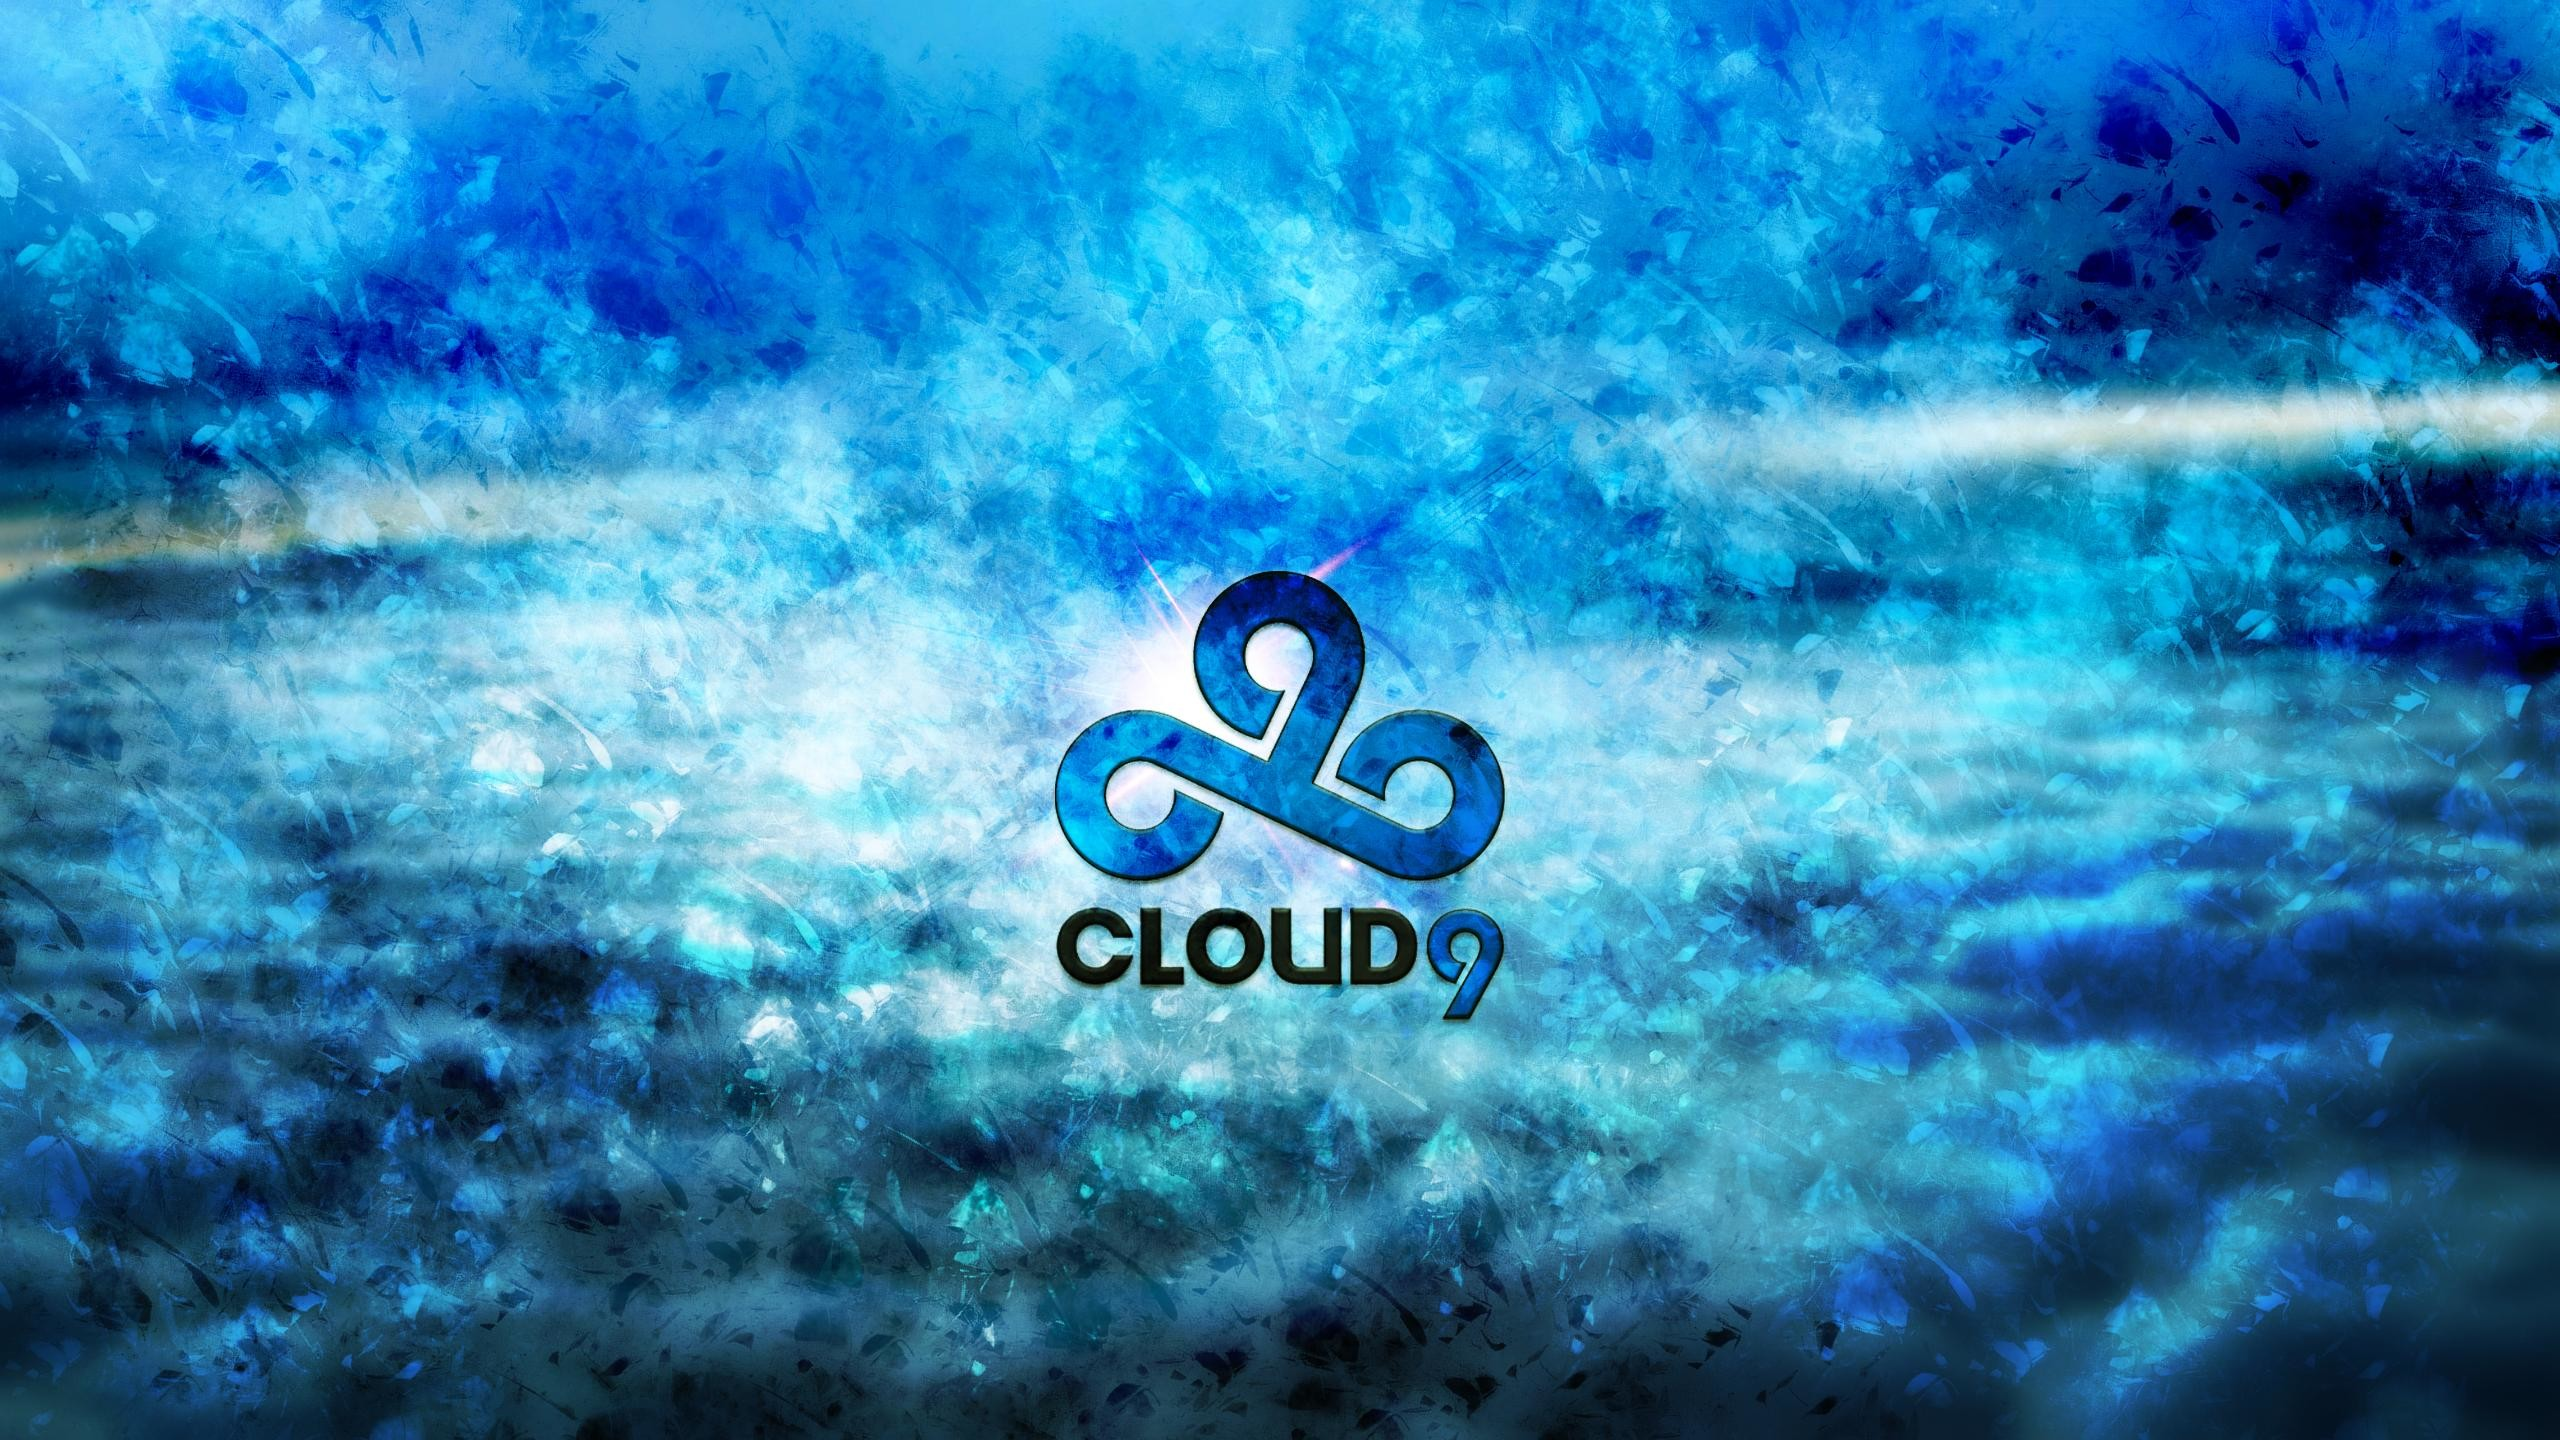 4k Hdr Wallpaper Iphone X Cloud 9 Csgo Hd Wallpapers 94 Images